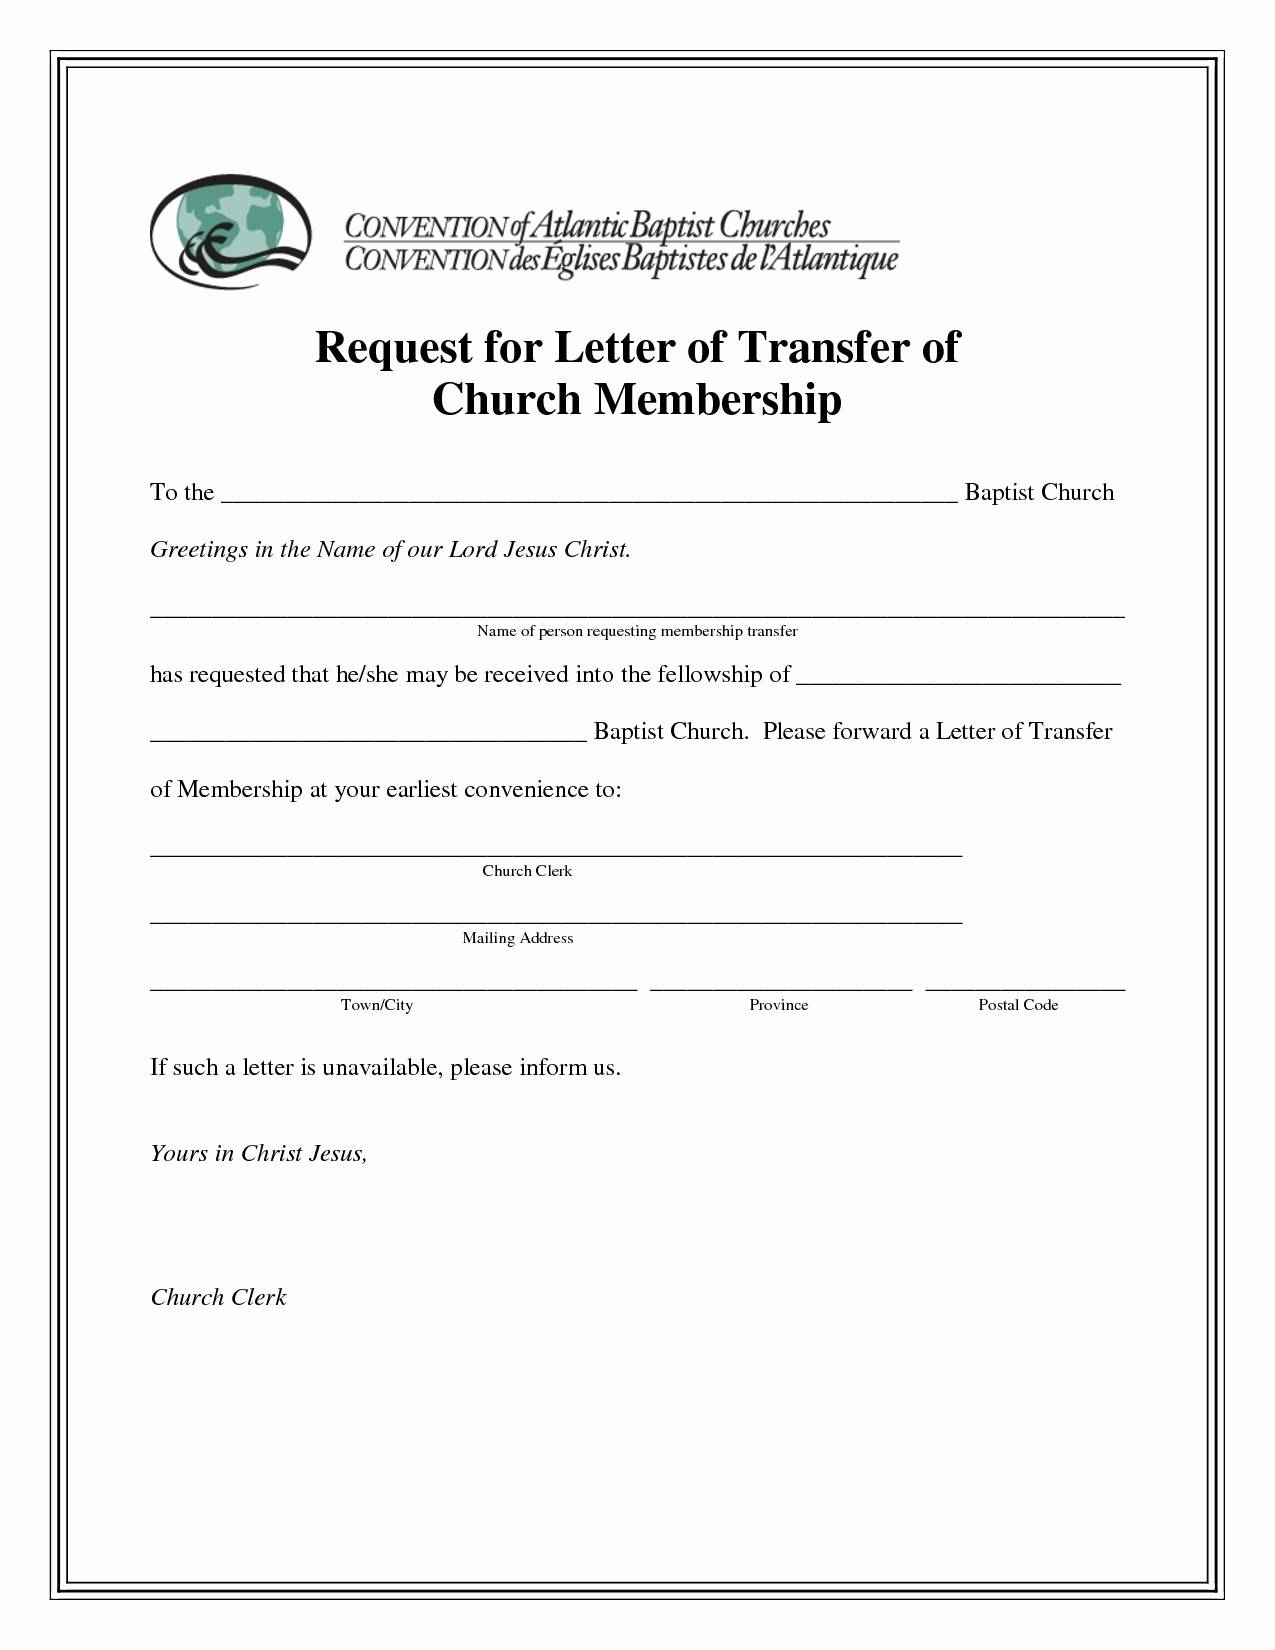 Sample Church Membership Transfer Letter Template - Church Membership Certificate Template Luxury Church Transfer Letter